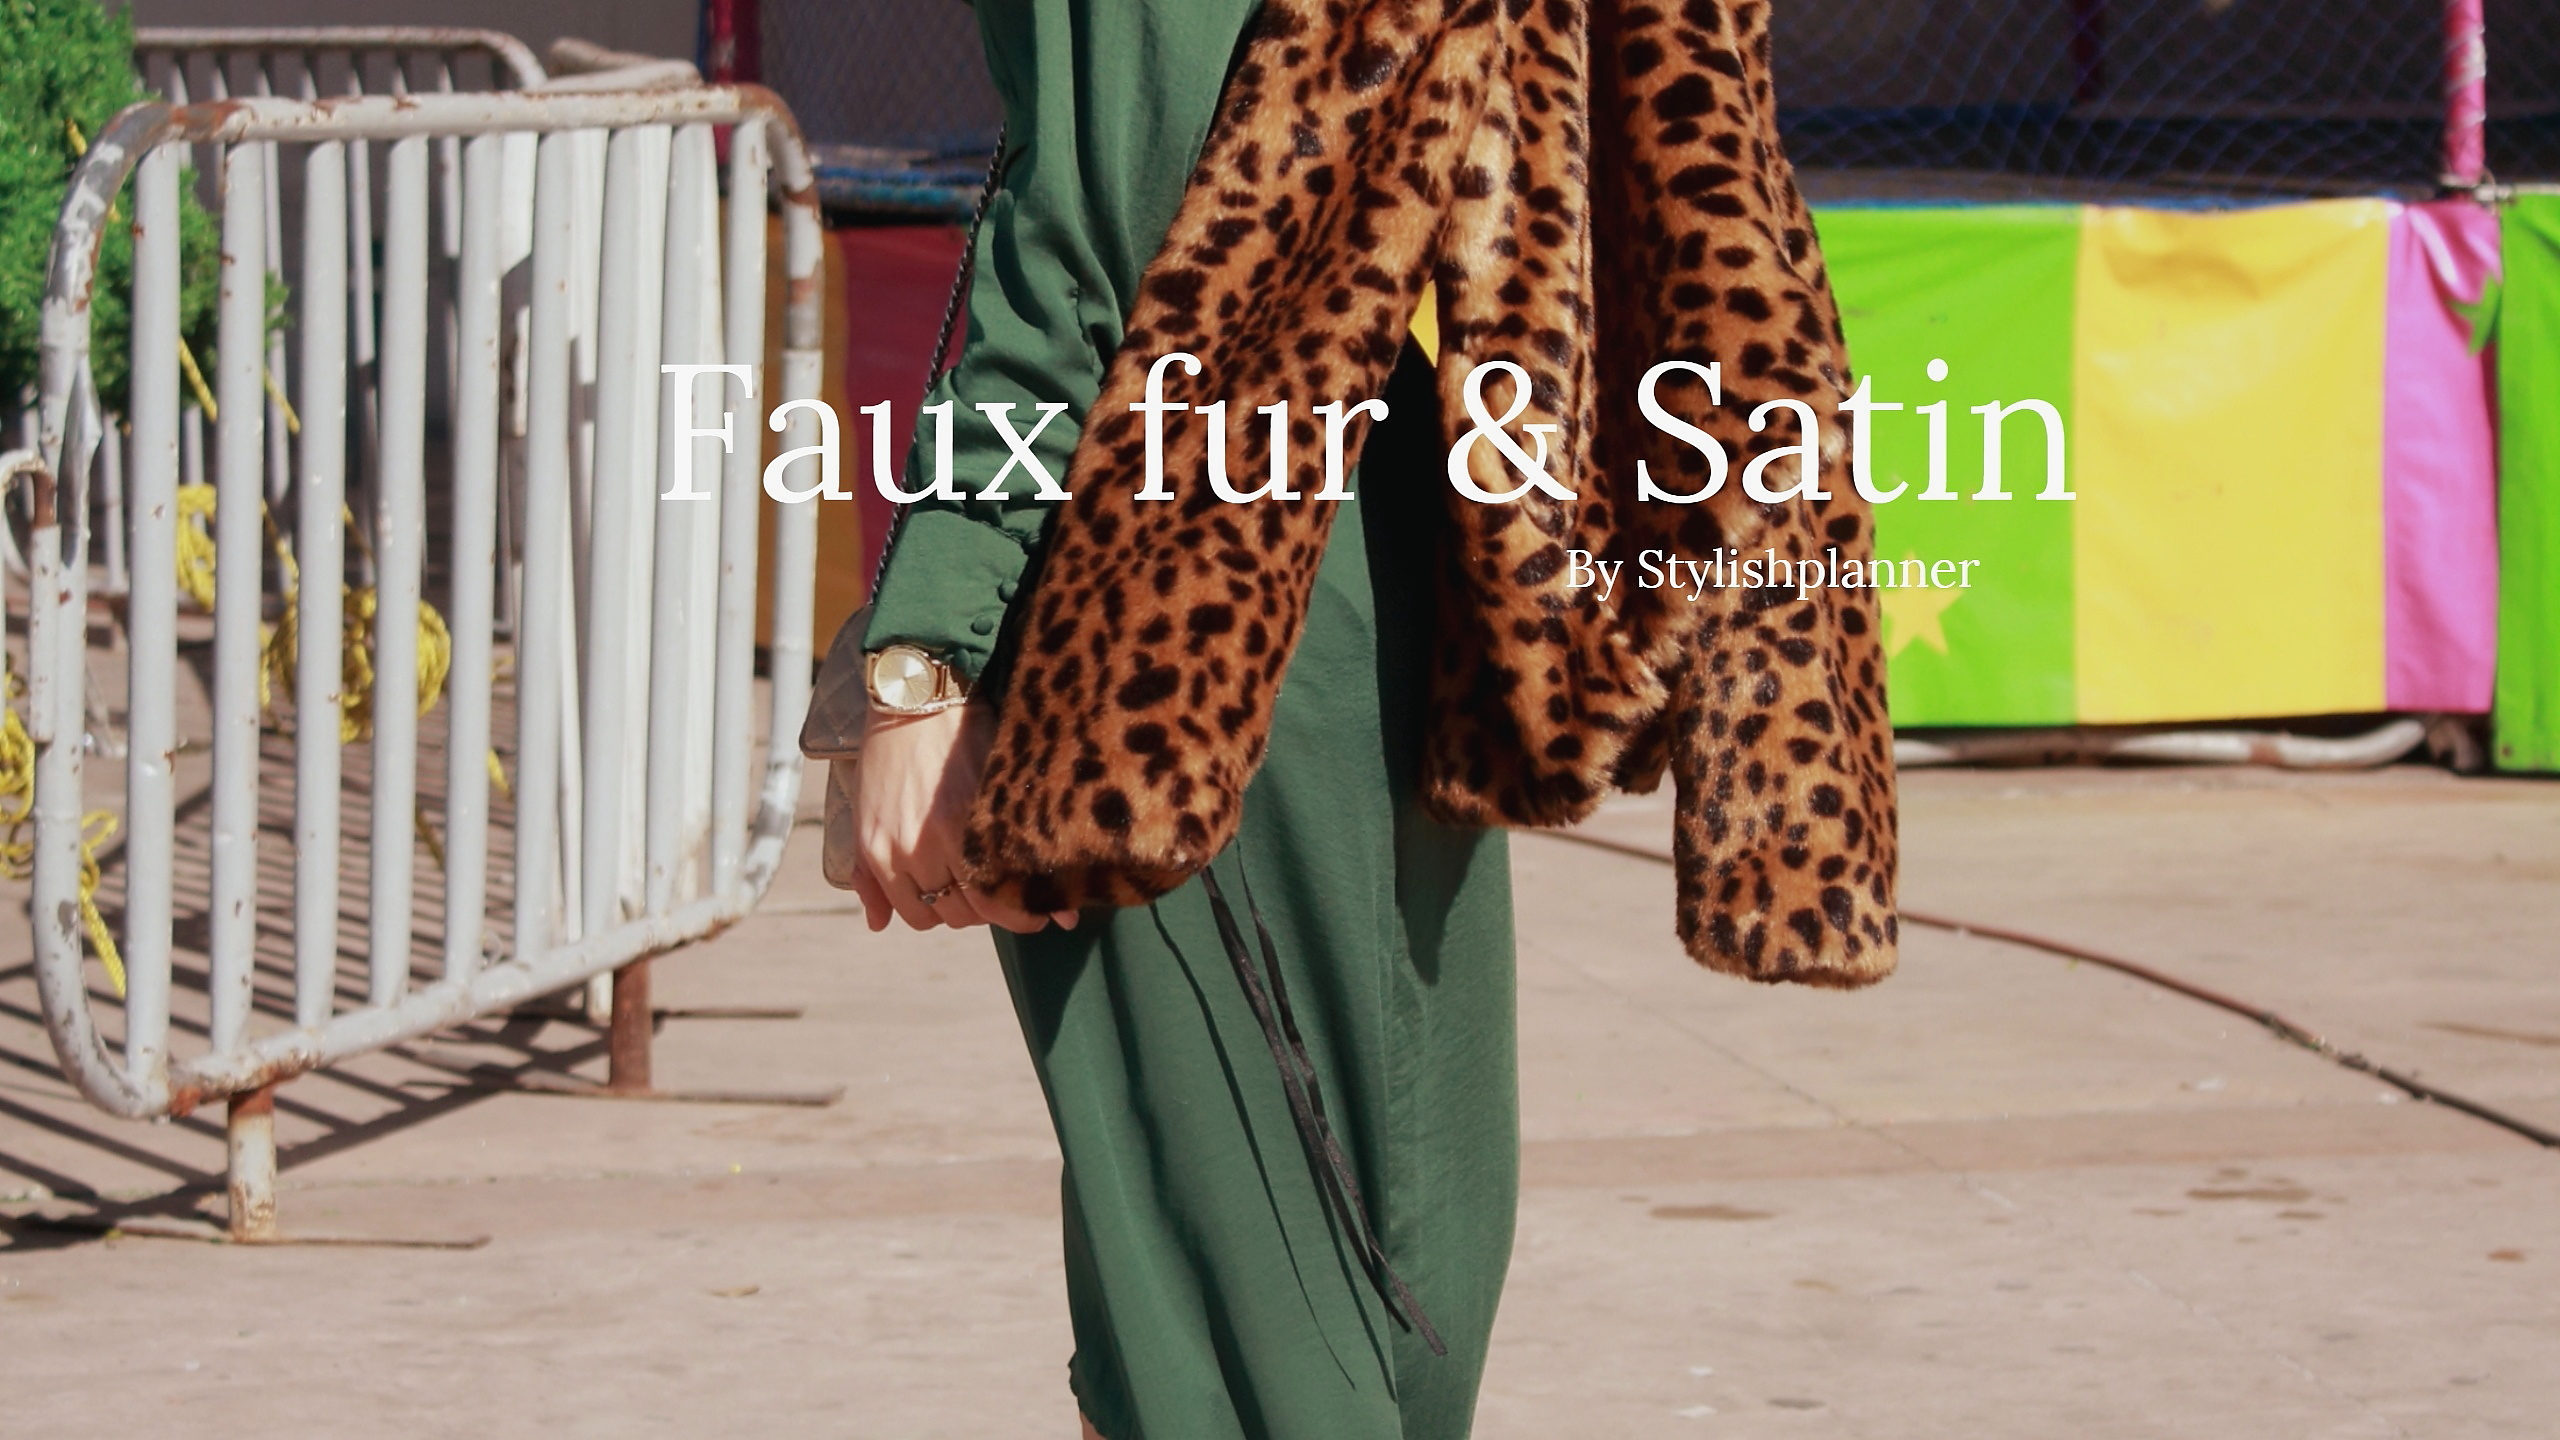 Fauxfur &satin my love